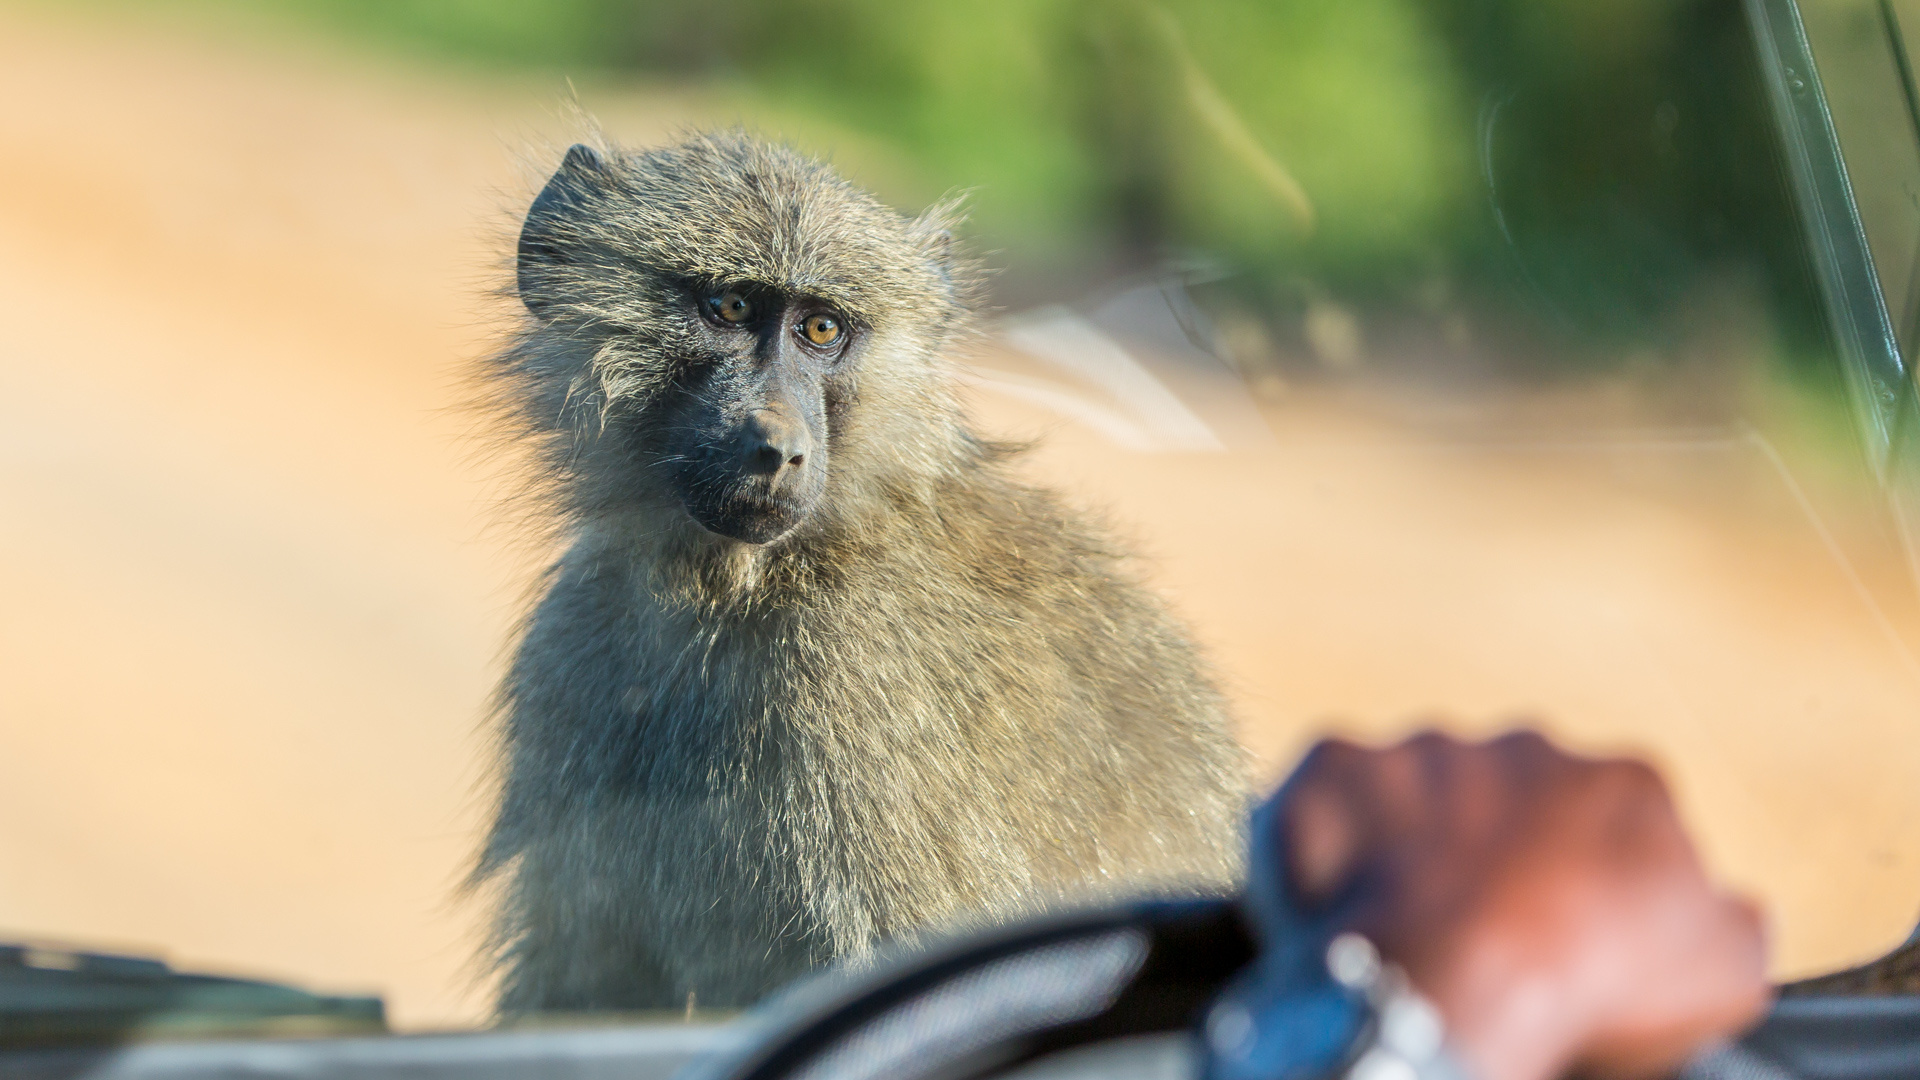 Hitchkiking in Uganda - easy peasy case ...